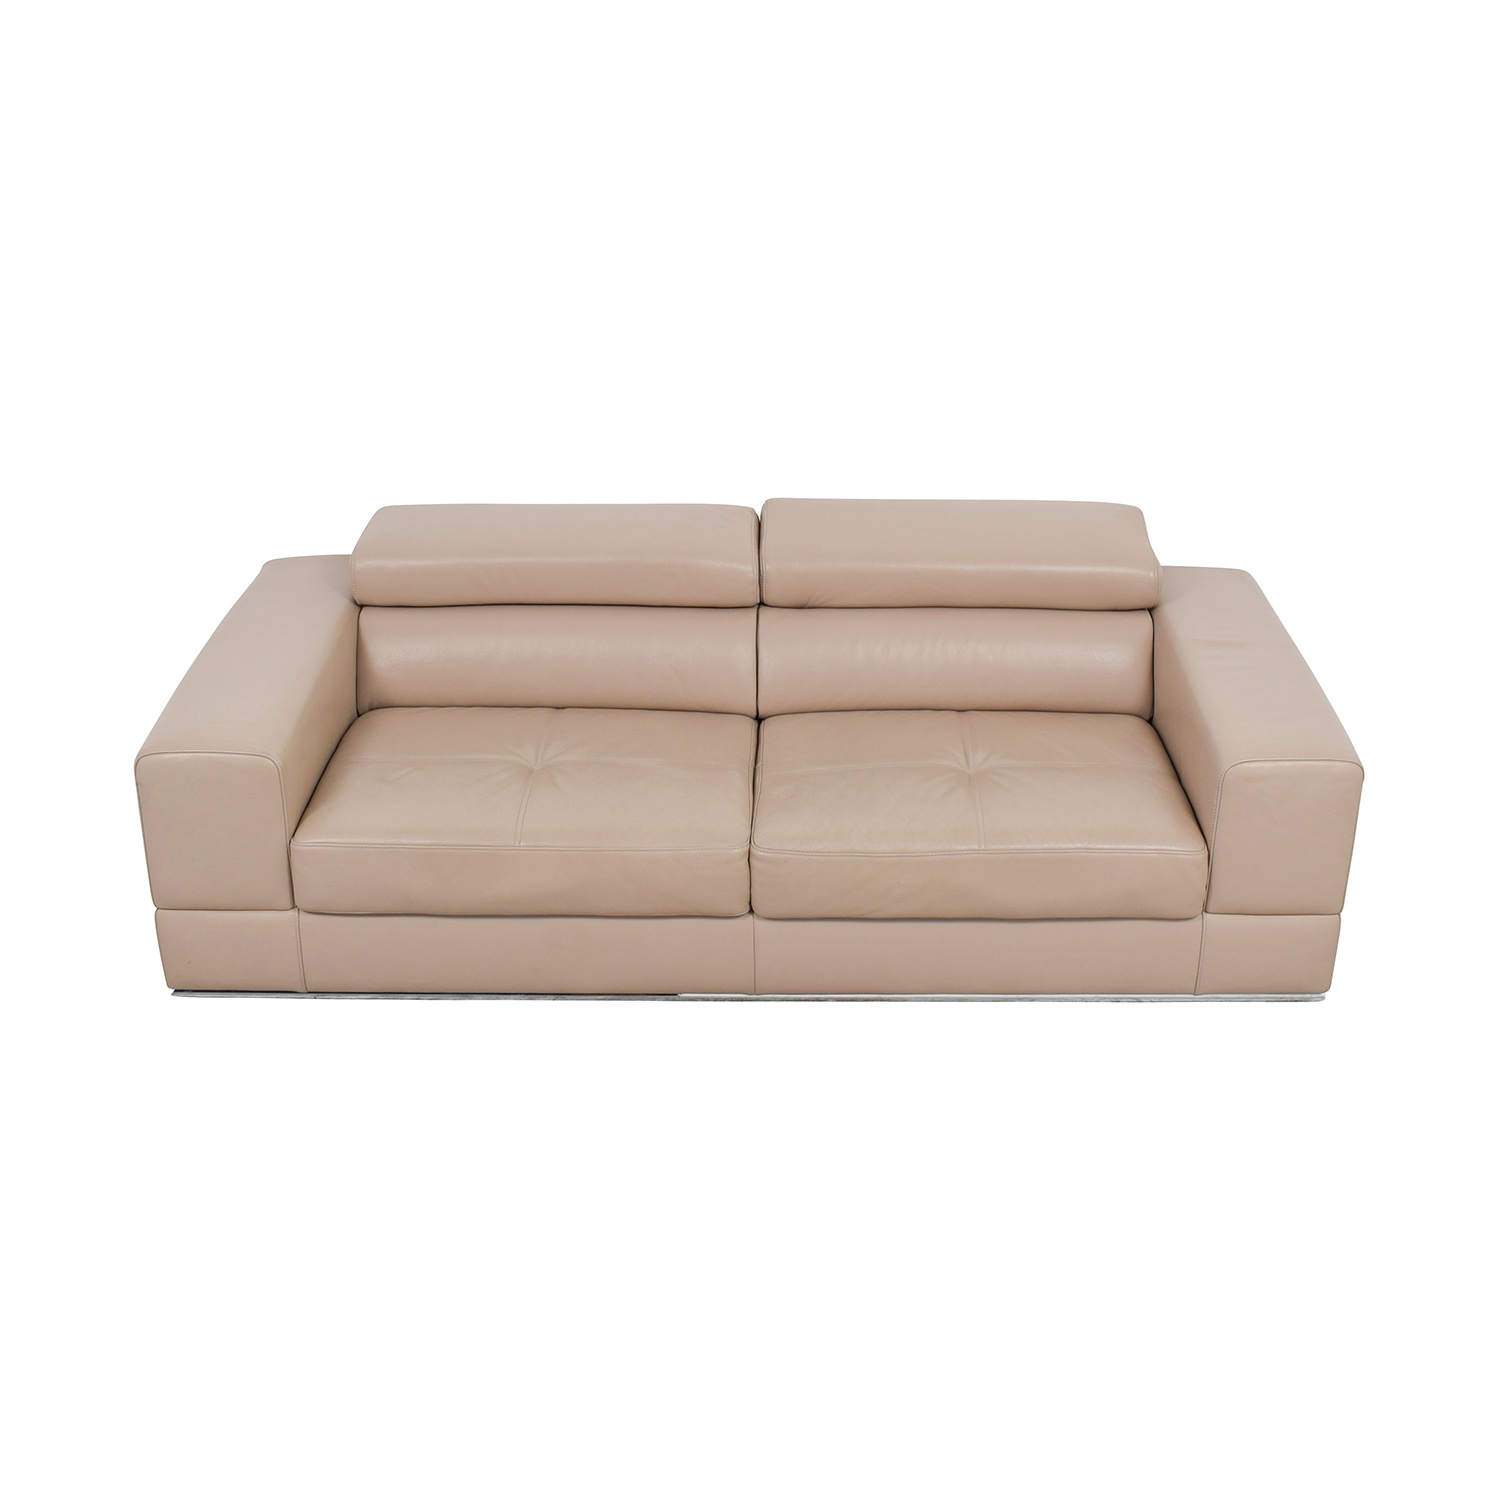 Lazzoni Beige Leather Sofa / Classic Sofas